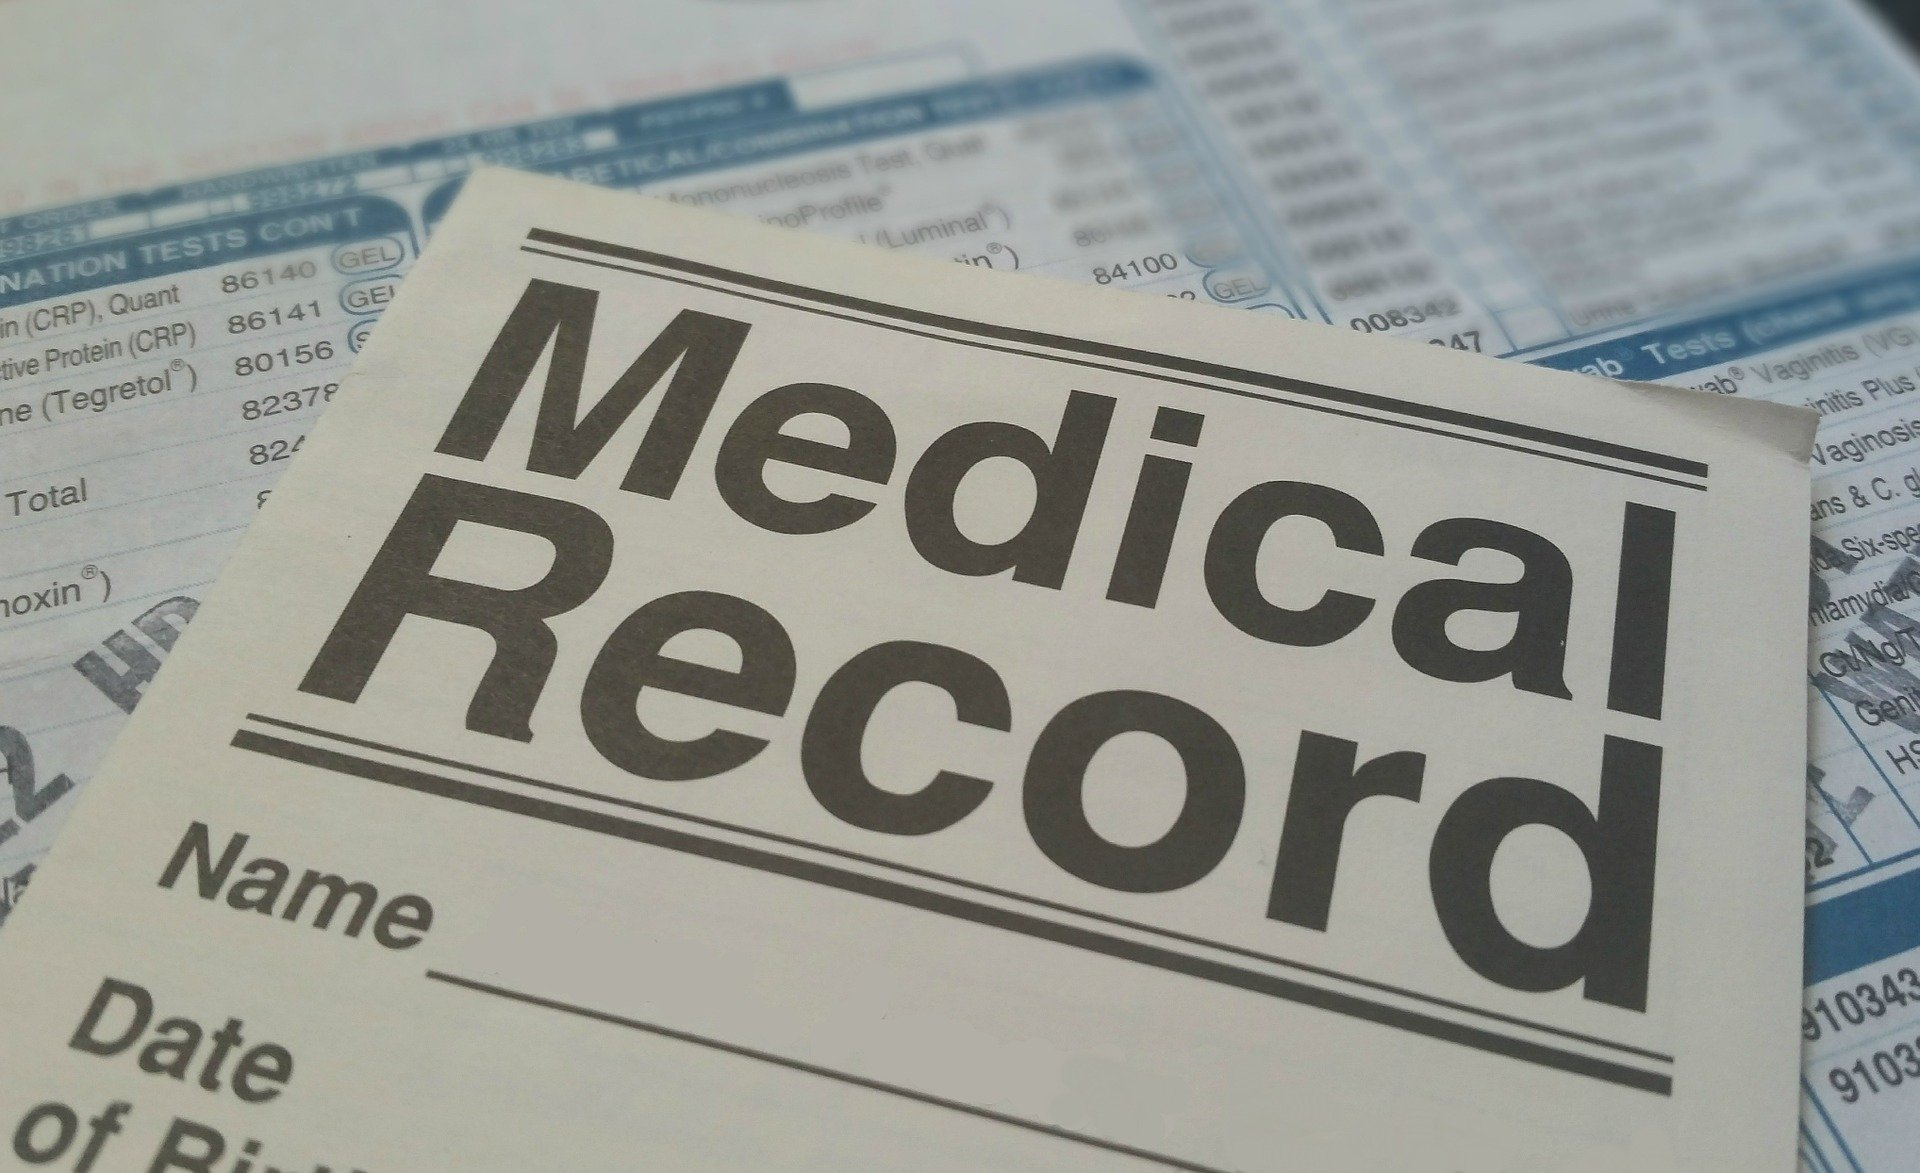 Medical Record Review Orthopedic Surgeon